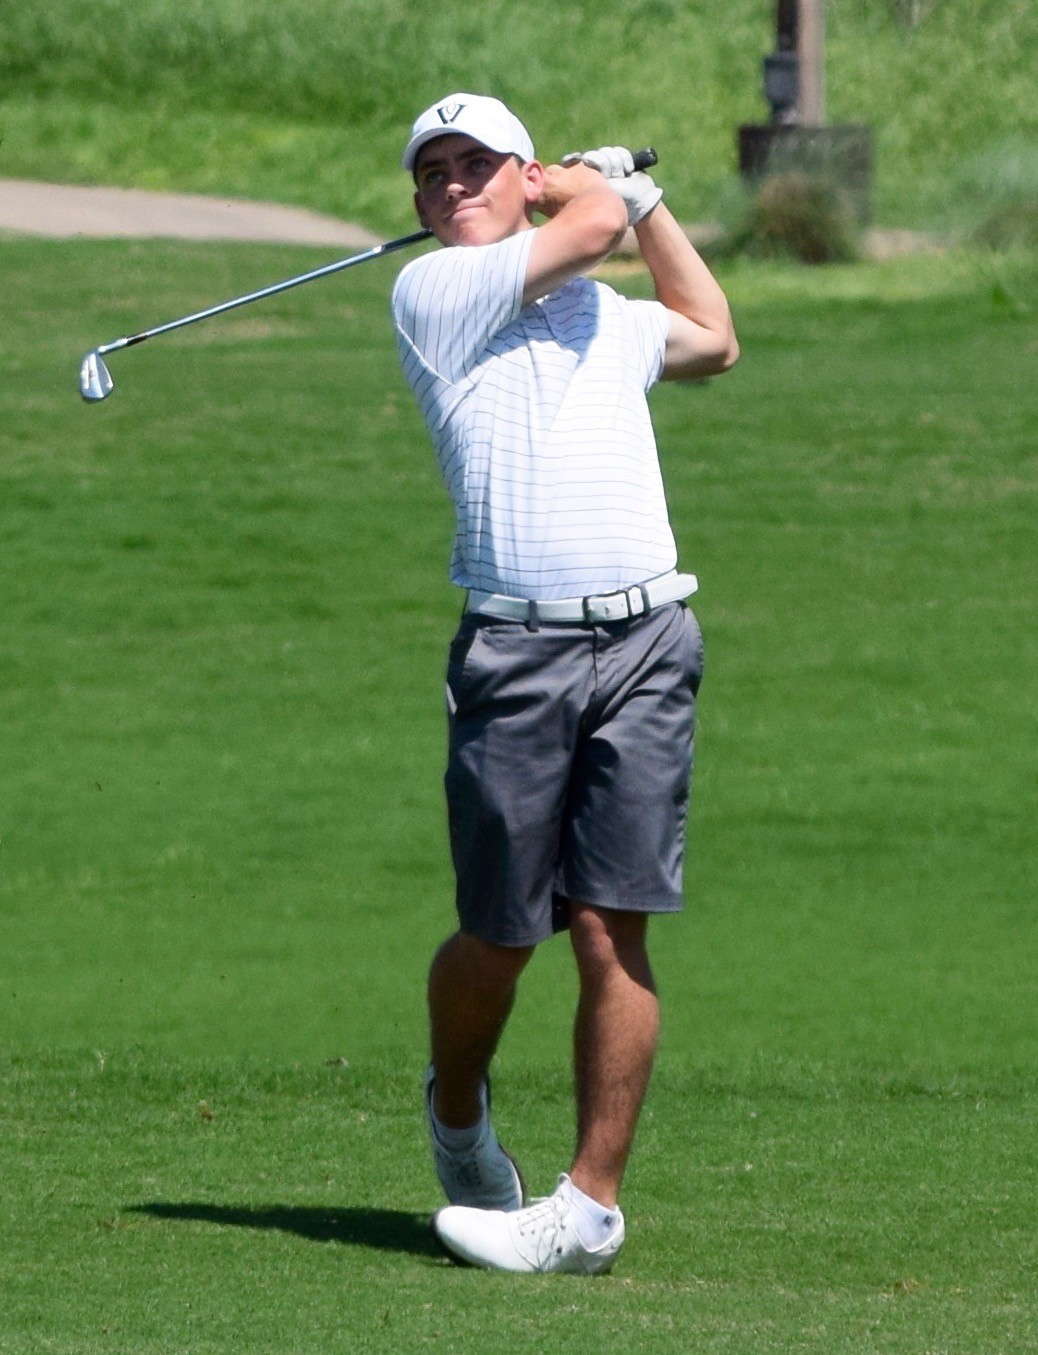 Jack Wehman and the Vandegrift boys' golf team finished in second place at the District 25-6A tournament on Thursday to qualify for the regional tournament in San Antonio.